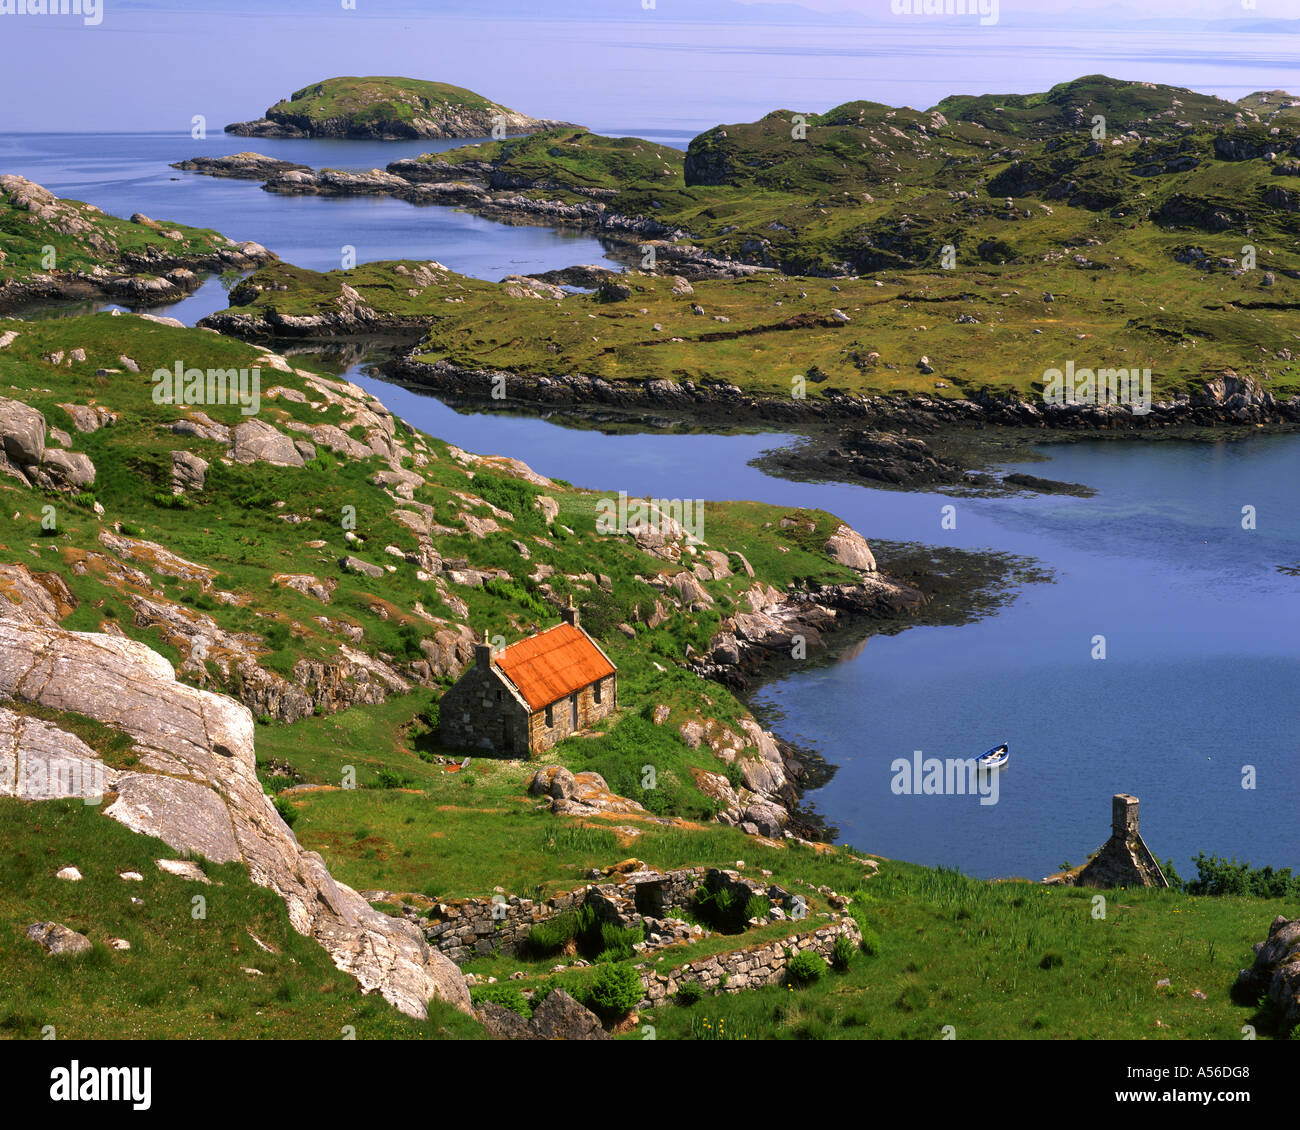 Fr - Scotland : Loch Geocrab sur Isle of Harris Photo Stock